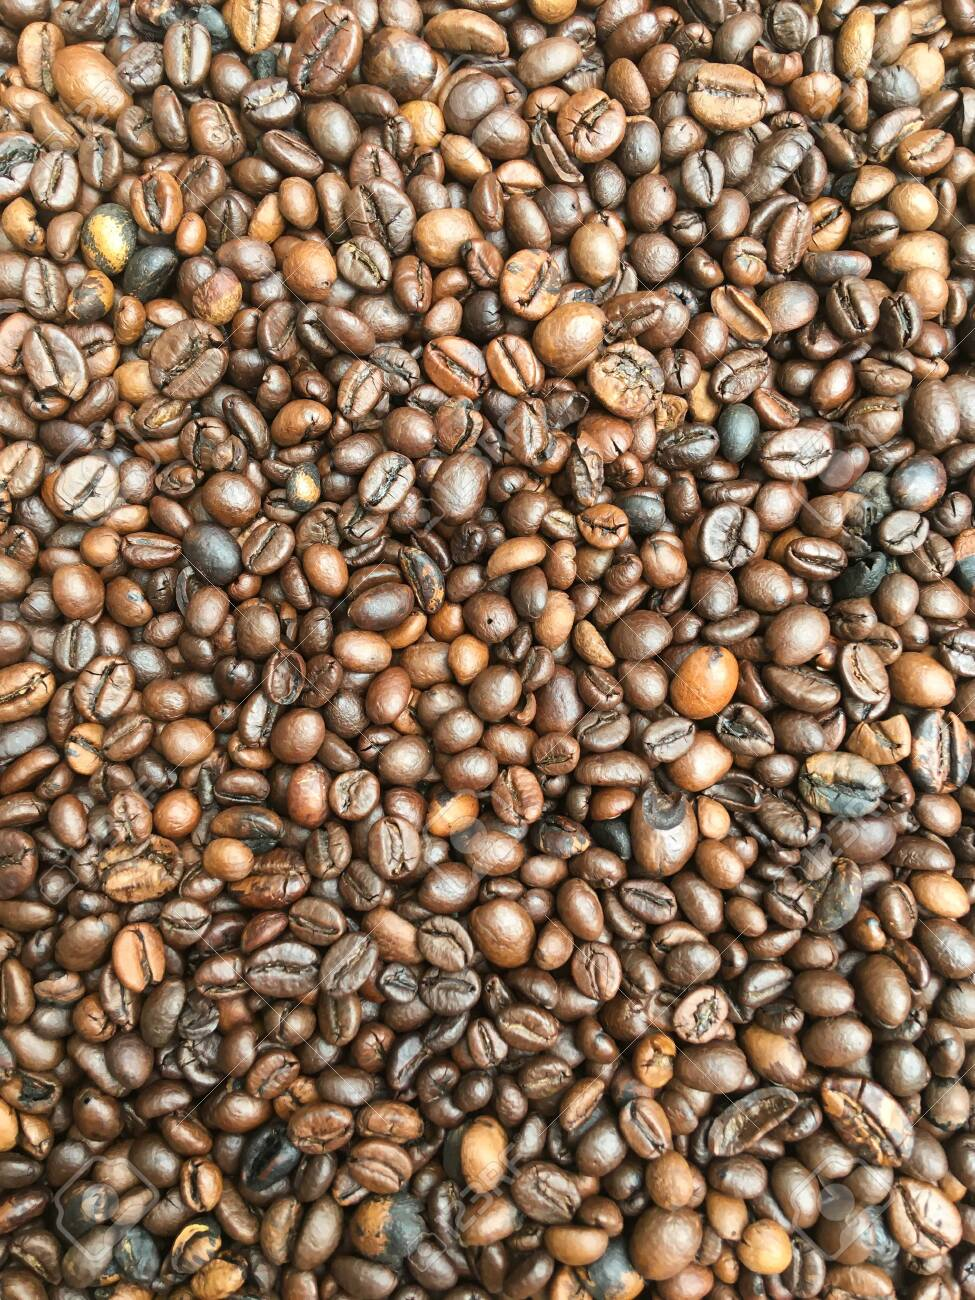 a bunch of coffee beans are lying on the table. coffee texture and background image - 147685287